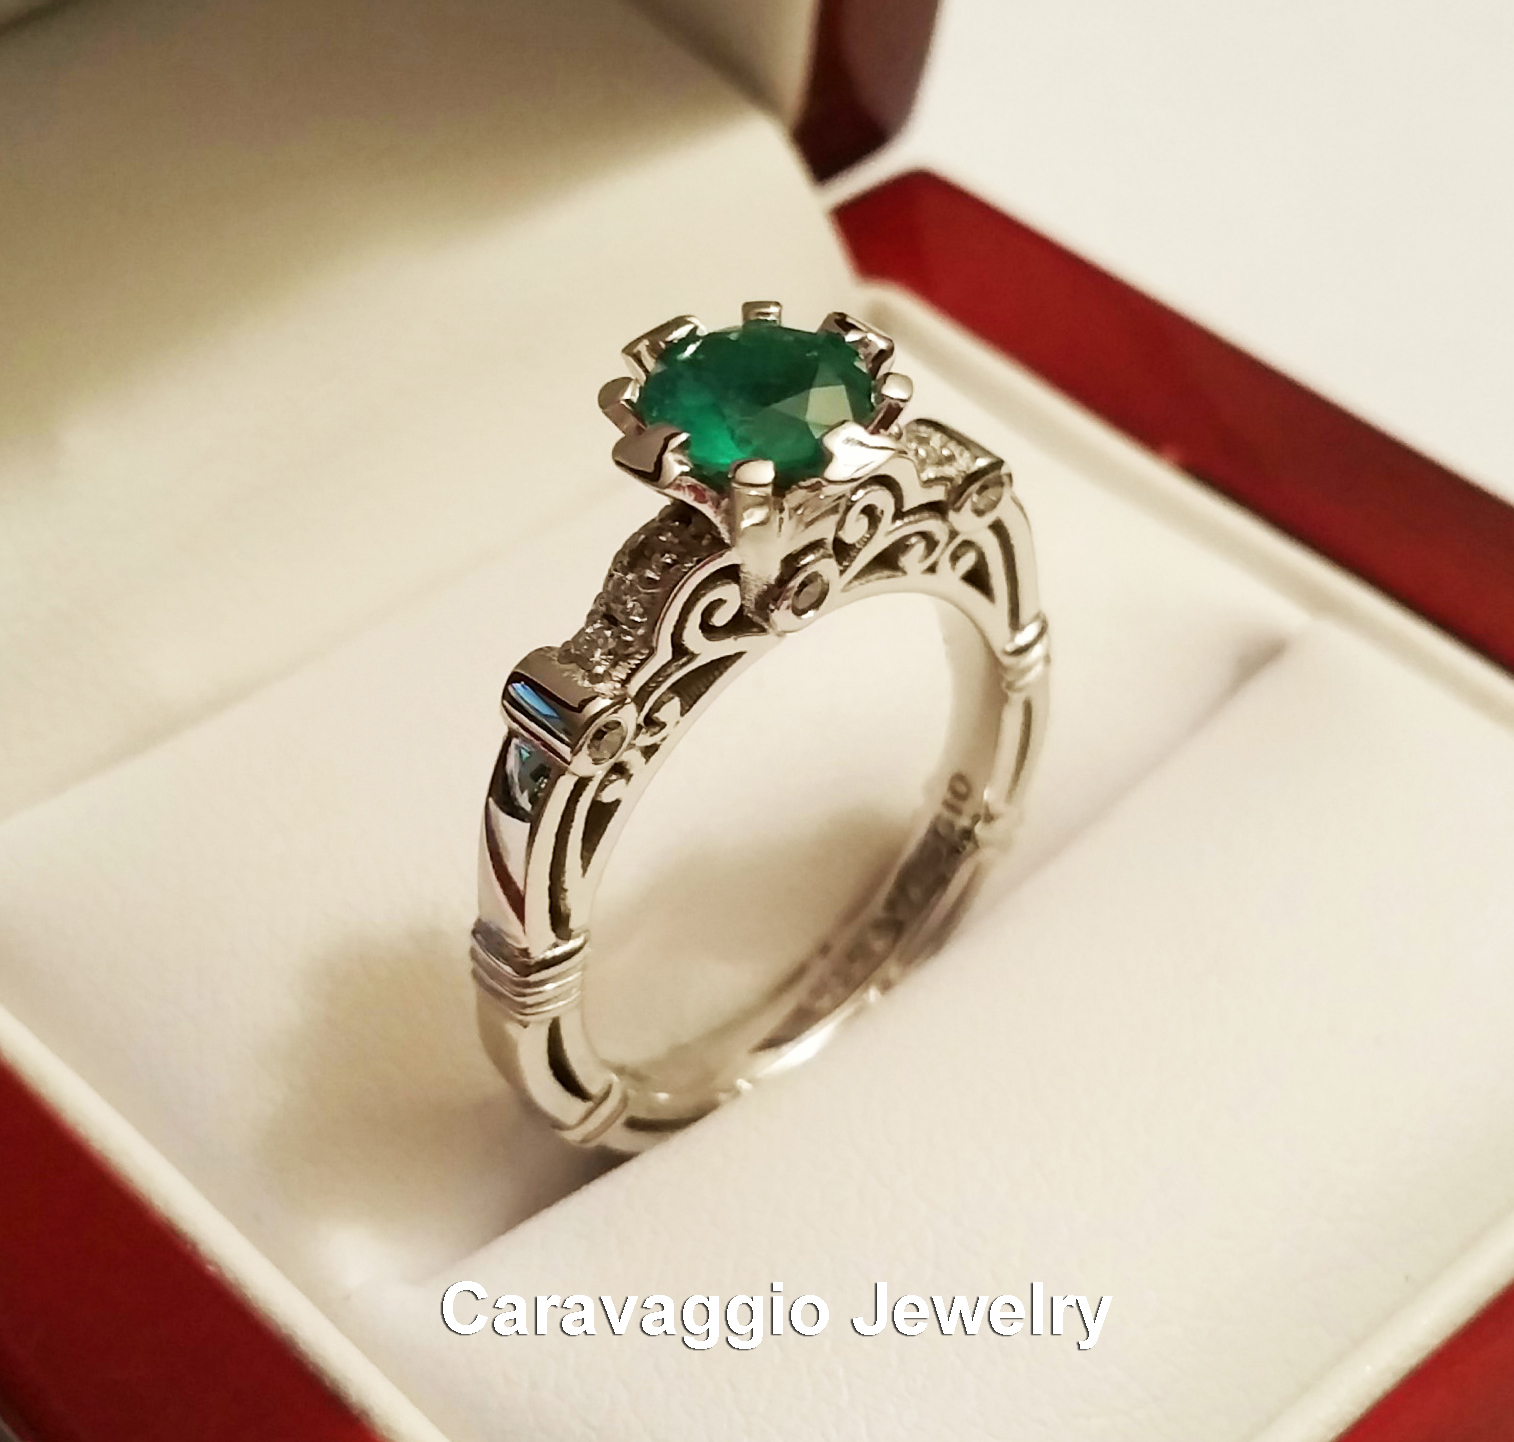 primary emerald art ct wedding masters engagement caravaggio ring white set jewelry product diamond band colombian gold menu